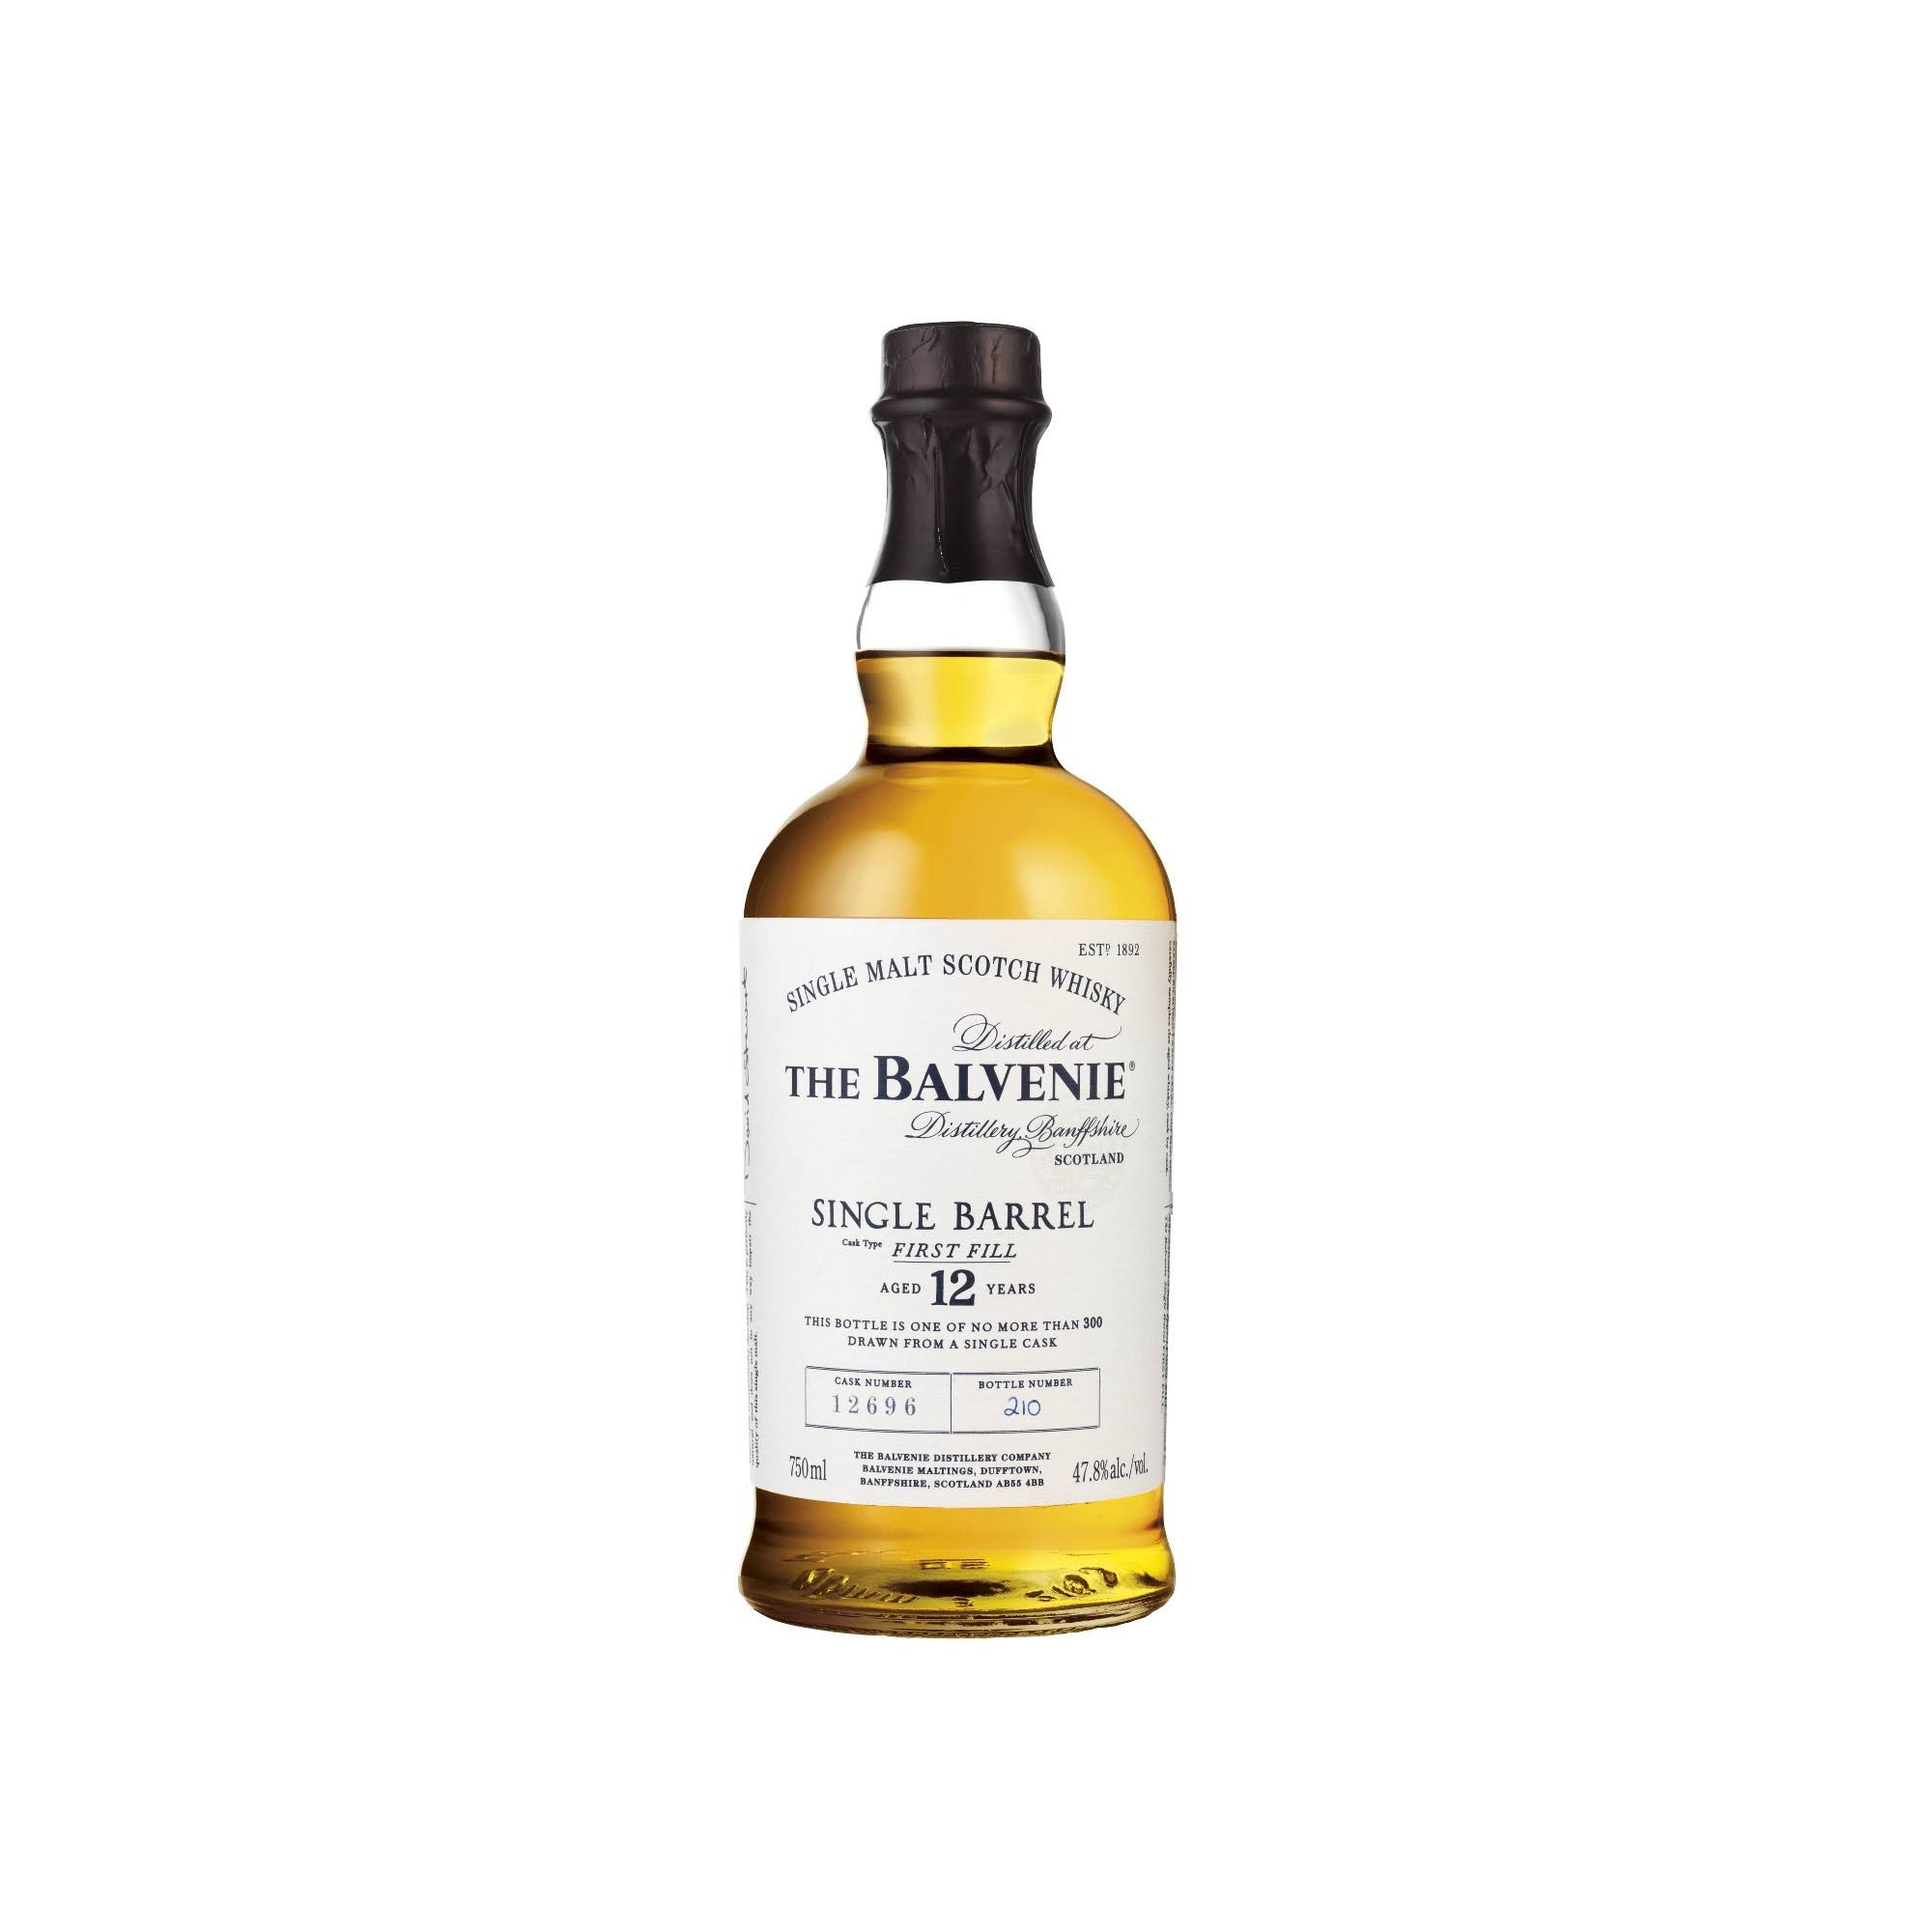 Balvenie Single Malt Scotch Whisky 12 Year Old - 750ml